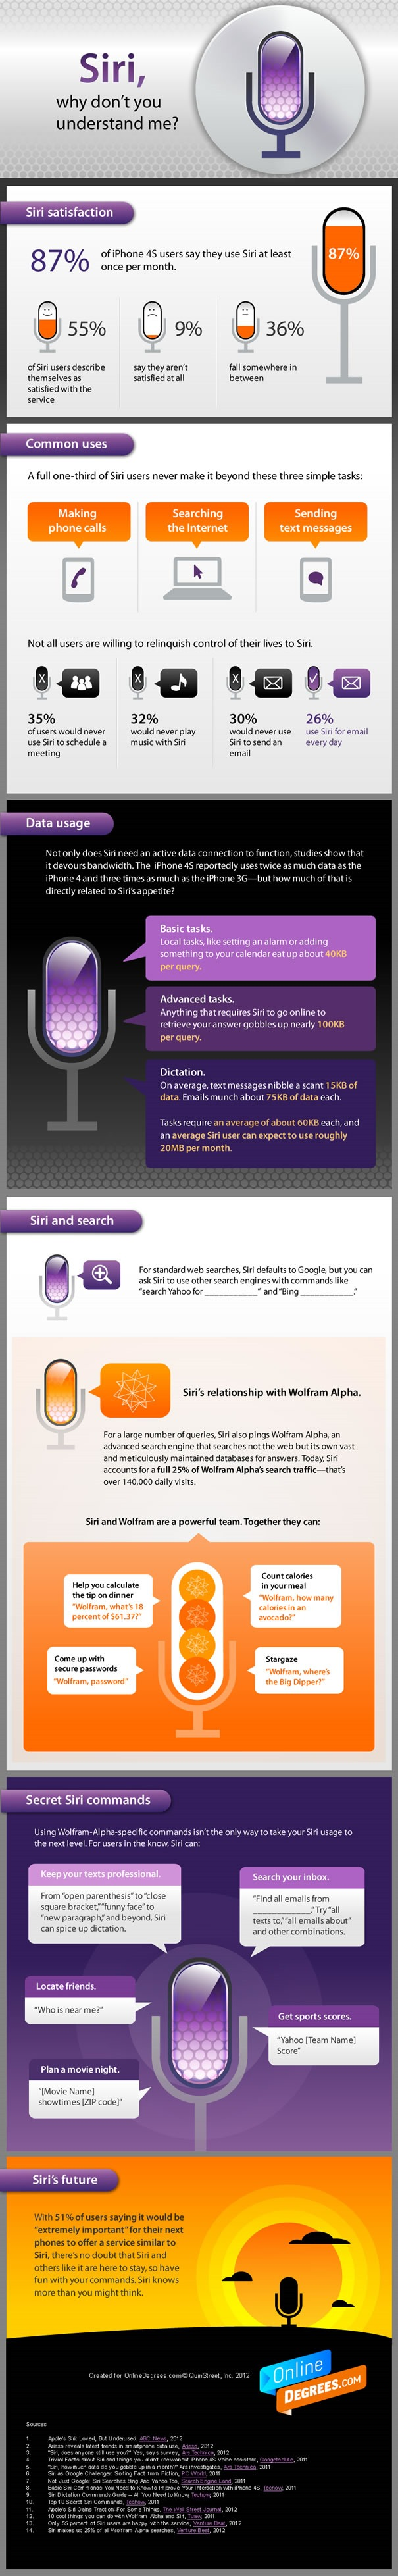 [Infographic] - Siri, Why Don't You Understand Me?